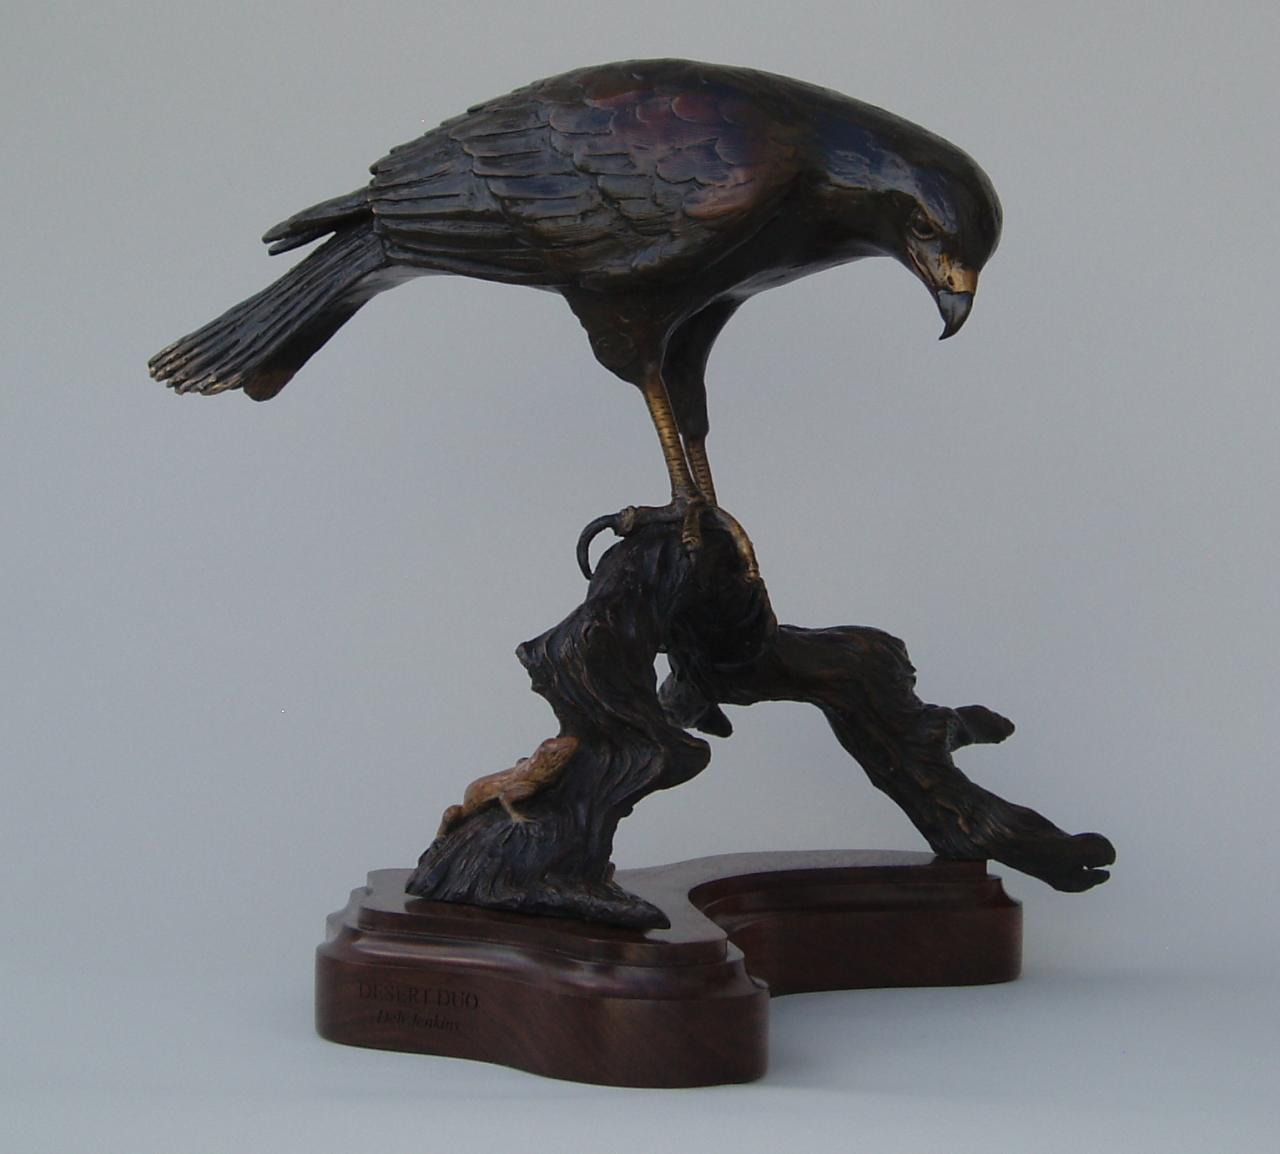 deb jenkins - bird sculptures